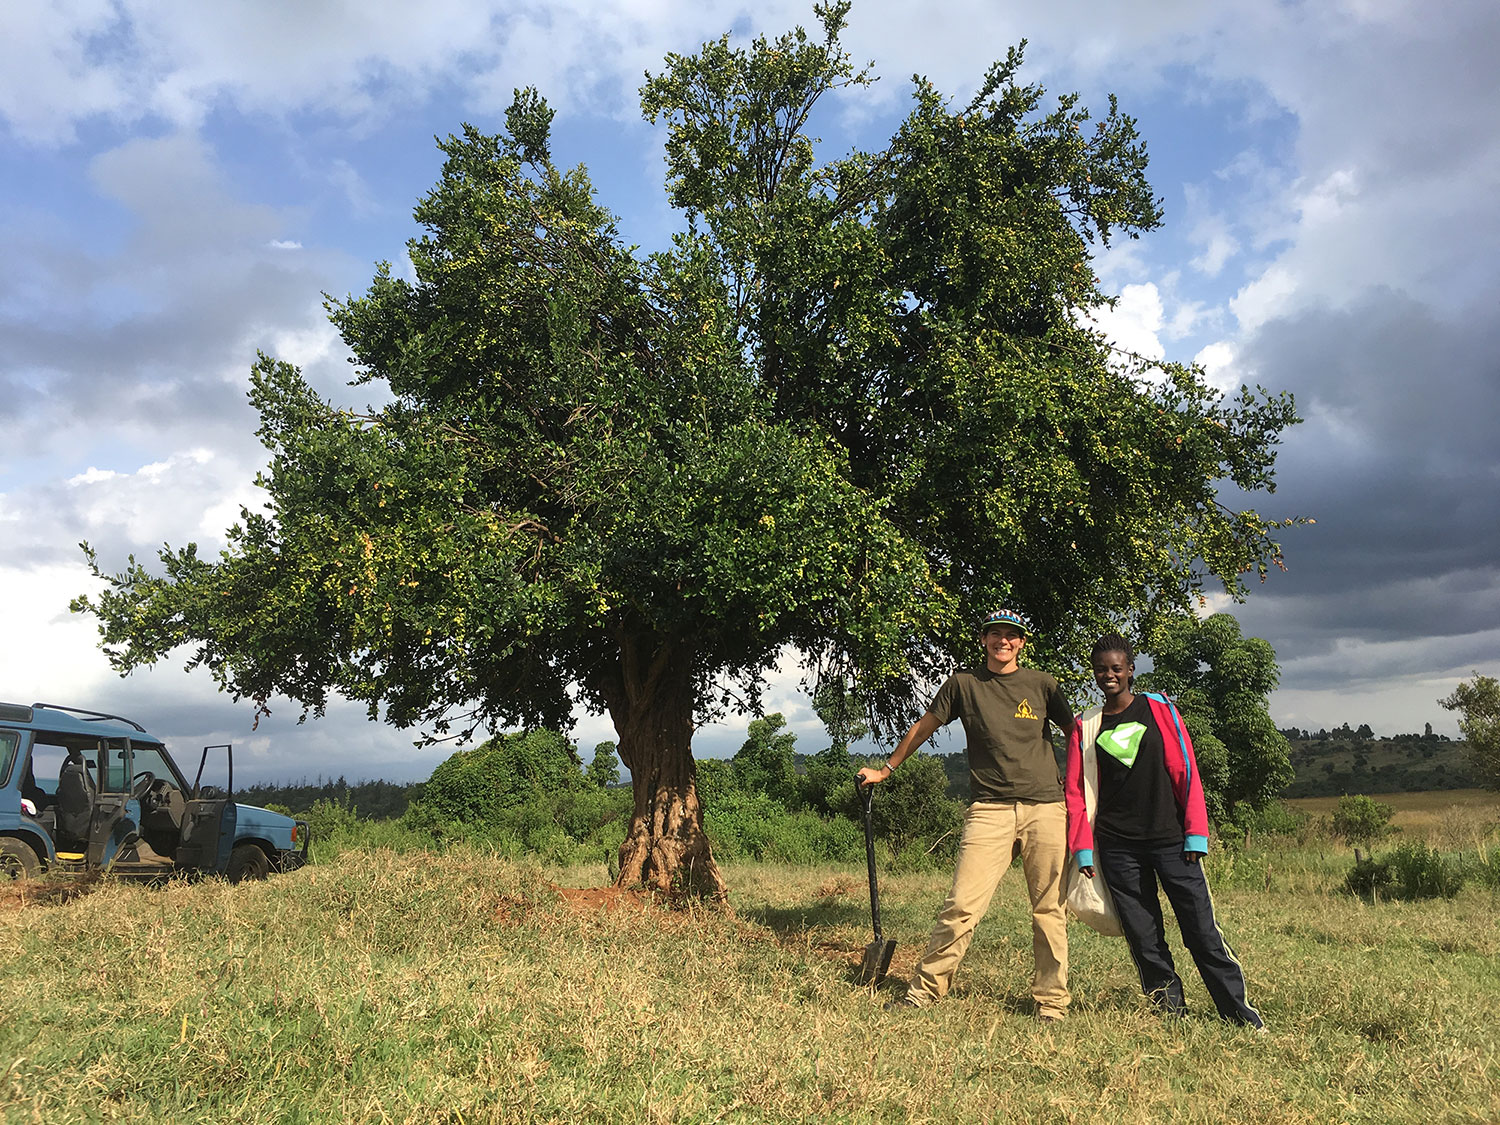 Two researchers stand in front of Acokanthera schimperi, also known as the poison arrow tree. Sara B. Weinstein, a white woman, is on the right, and Katrina Nyawira, a black woman, is on the left. Weinstein is leaning on a shovel being used as a cane. The tree is large, with its canopy sprawling out and up in a conical shape. The tree along in an open field. A blue jeep is in the background at the left of the frame, with its doors open.